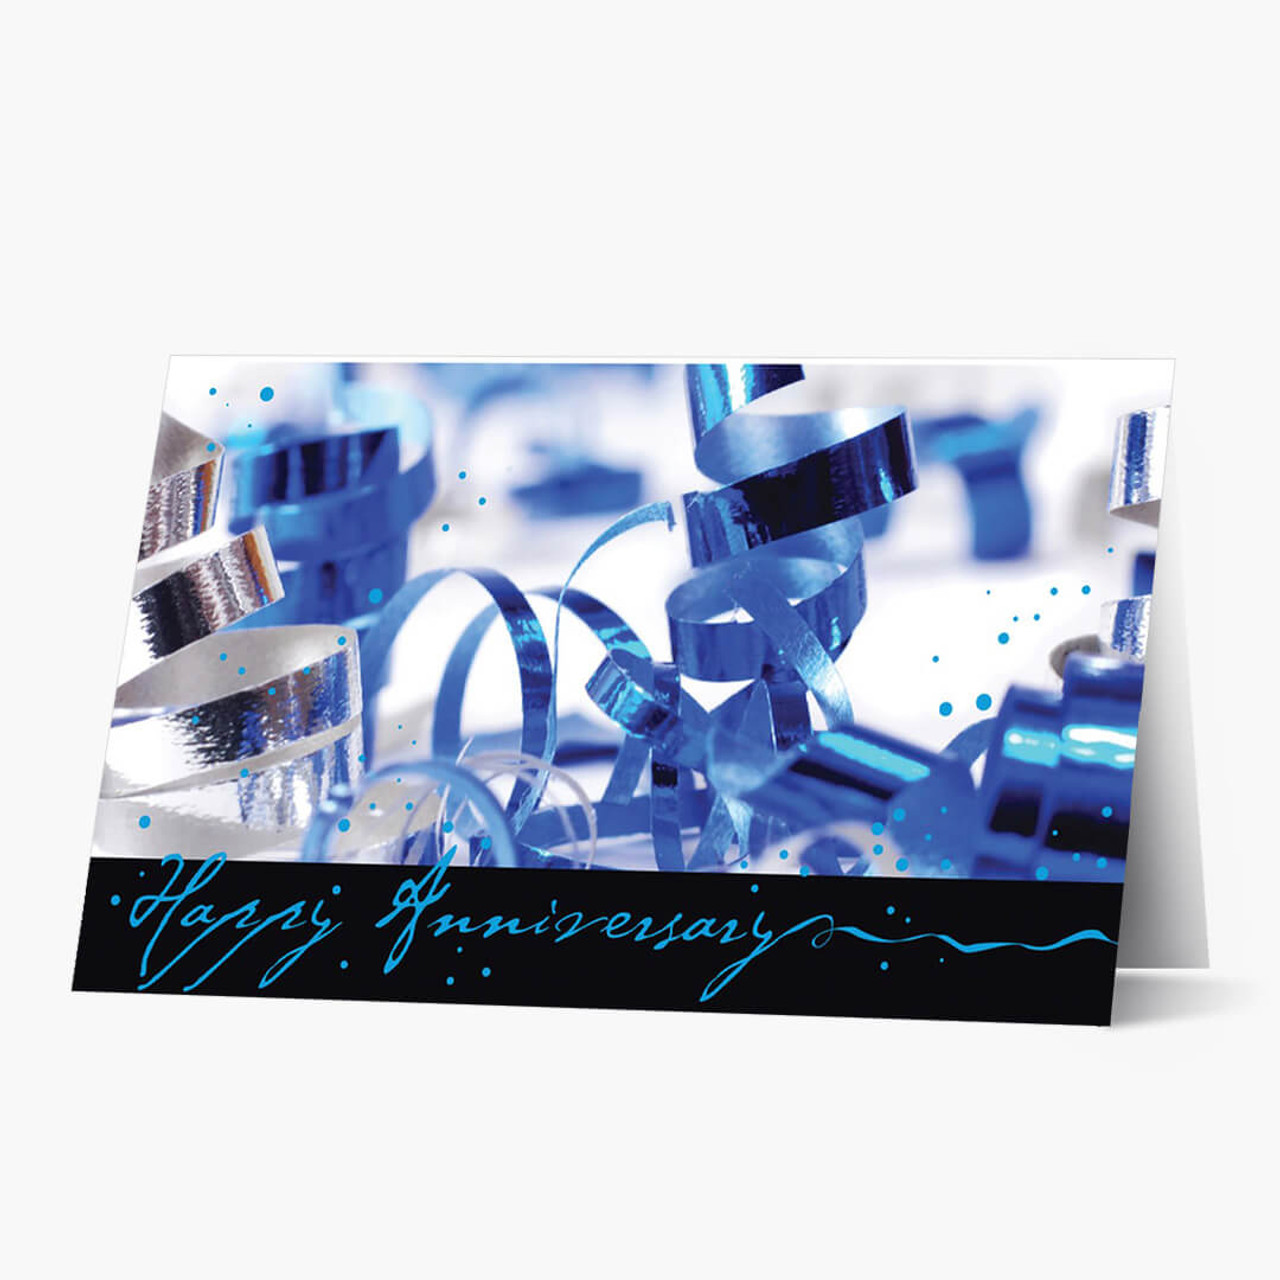 Wild Ribbon Anniversary Card